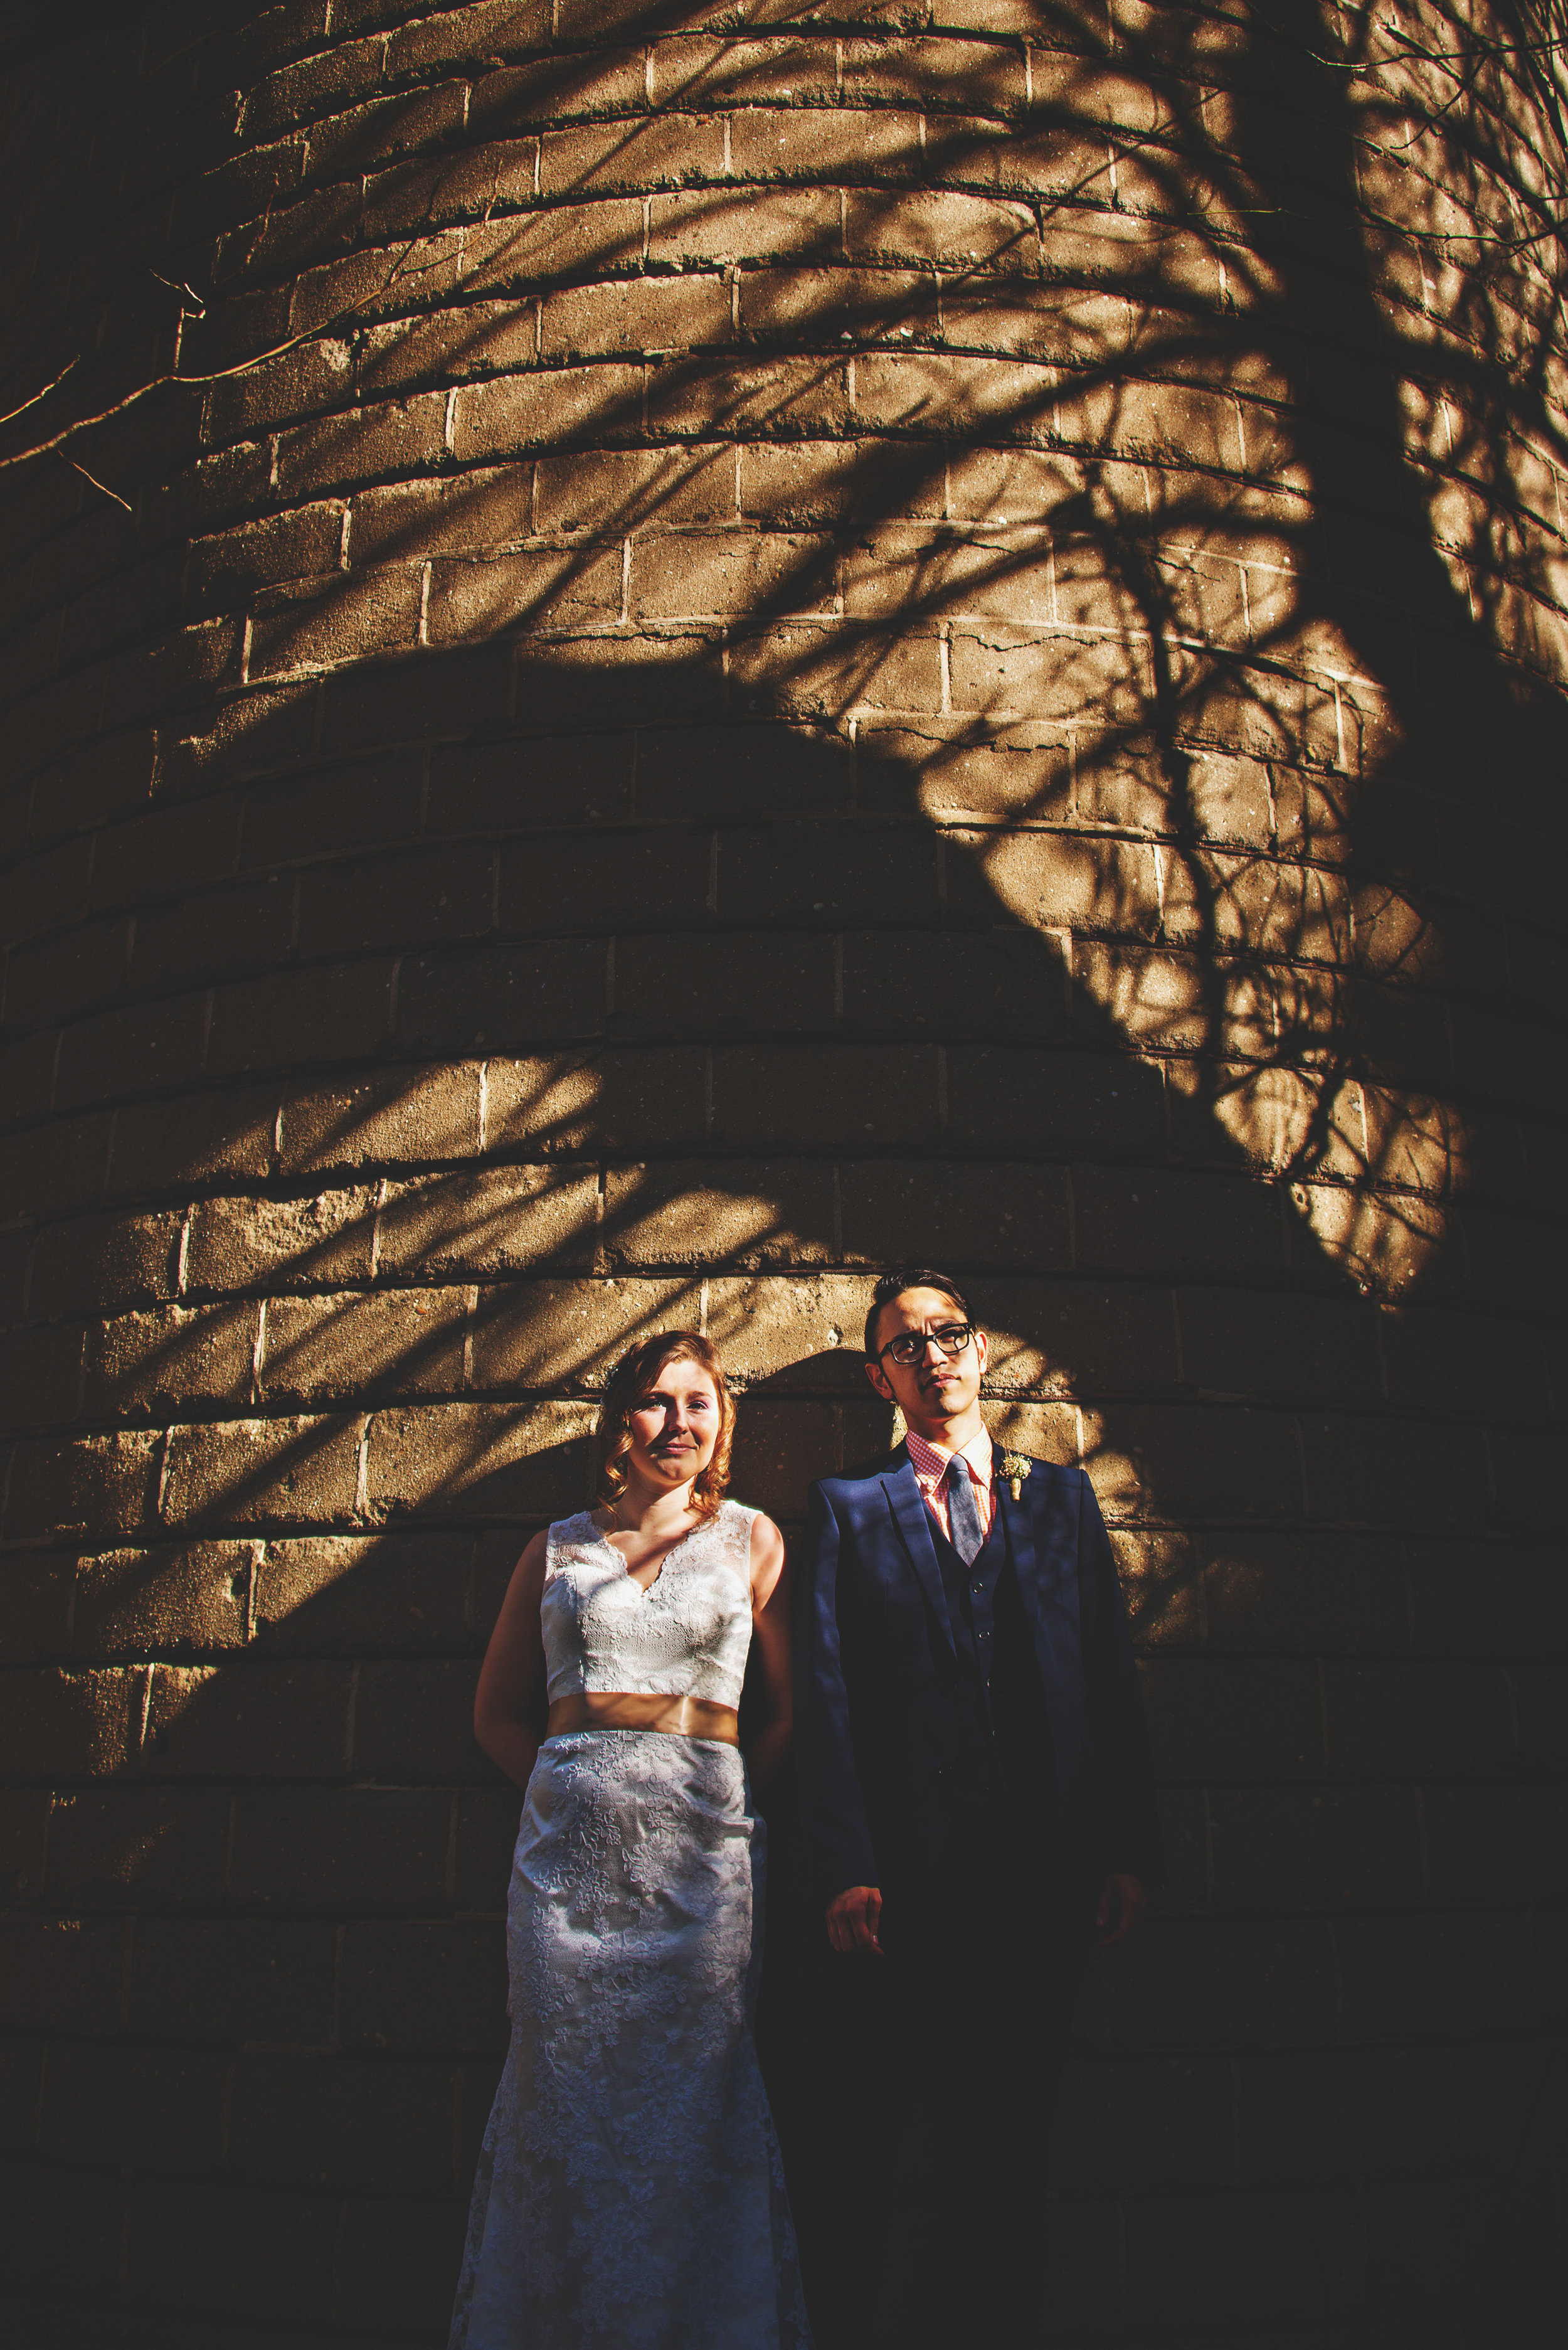 benton_harbor_wedding_photographer_blue_dress_barn_12.jpg